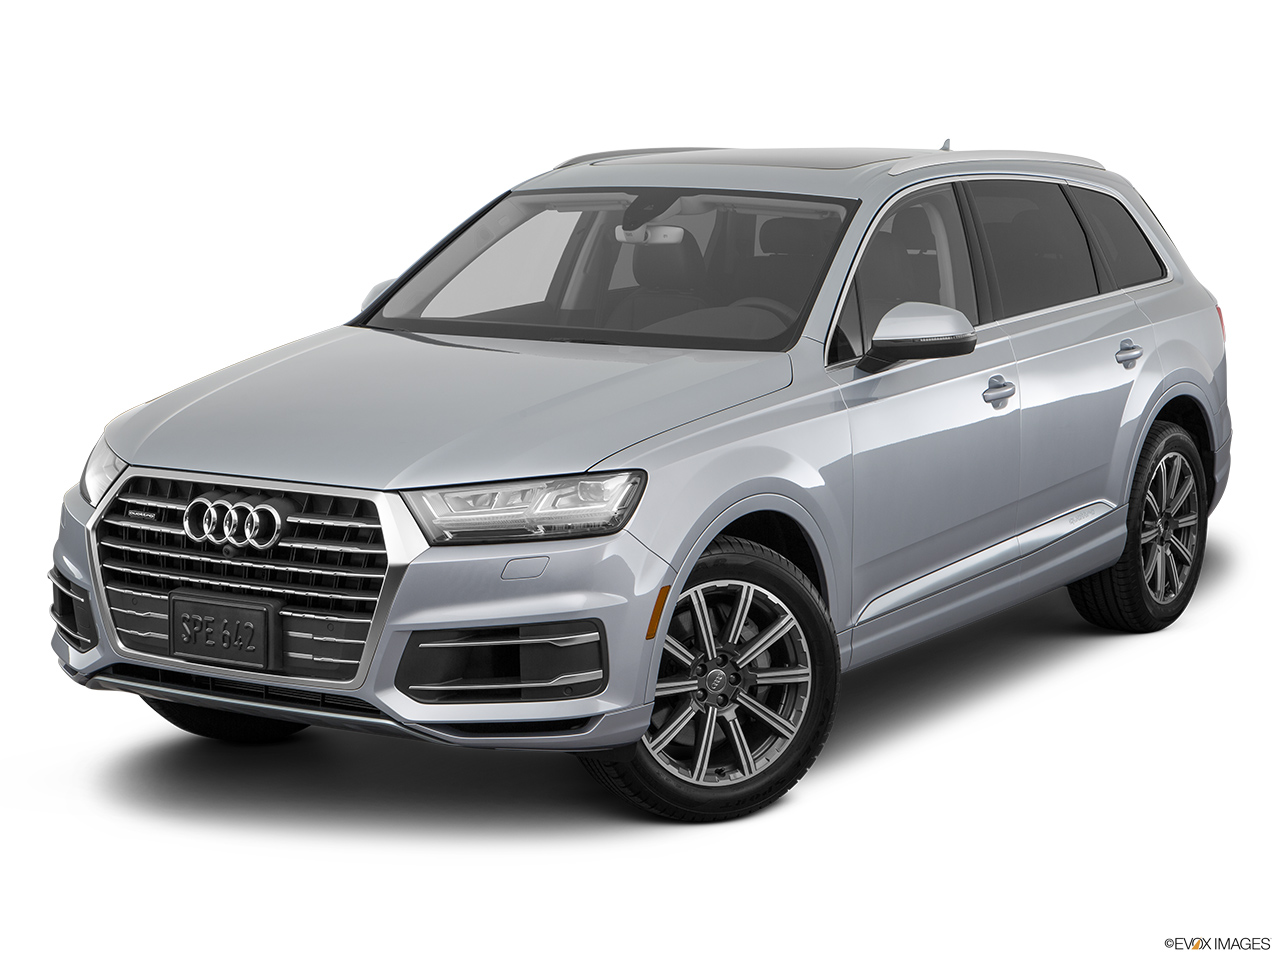 Worksheet. 2017 Audi Q7 Prices in UAE Gulf Specs  Reviews for Dubai Abu